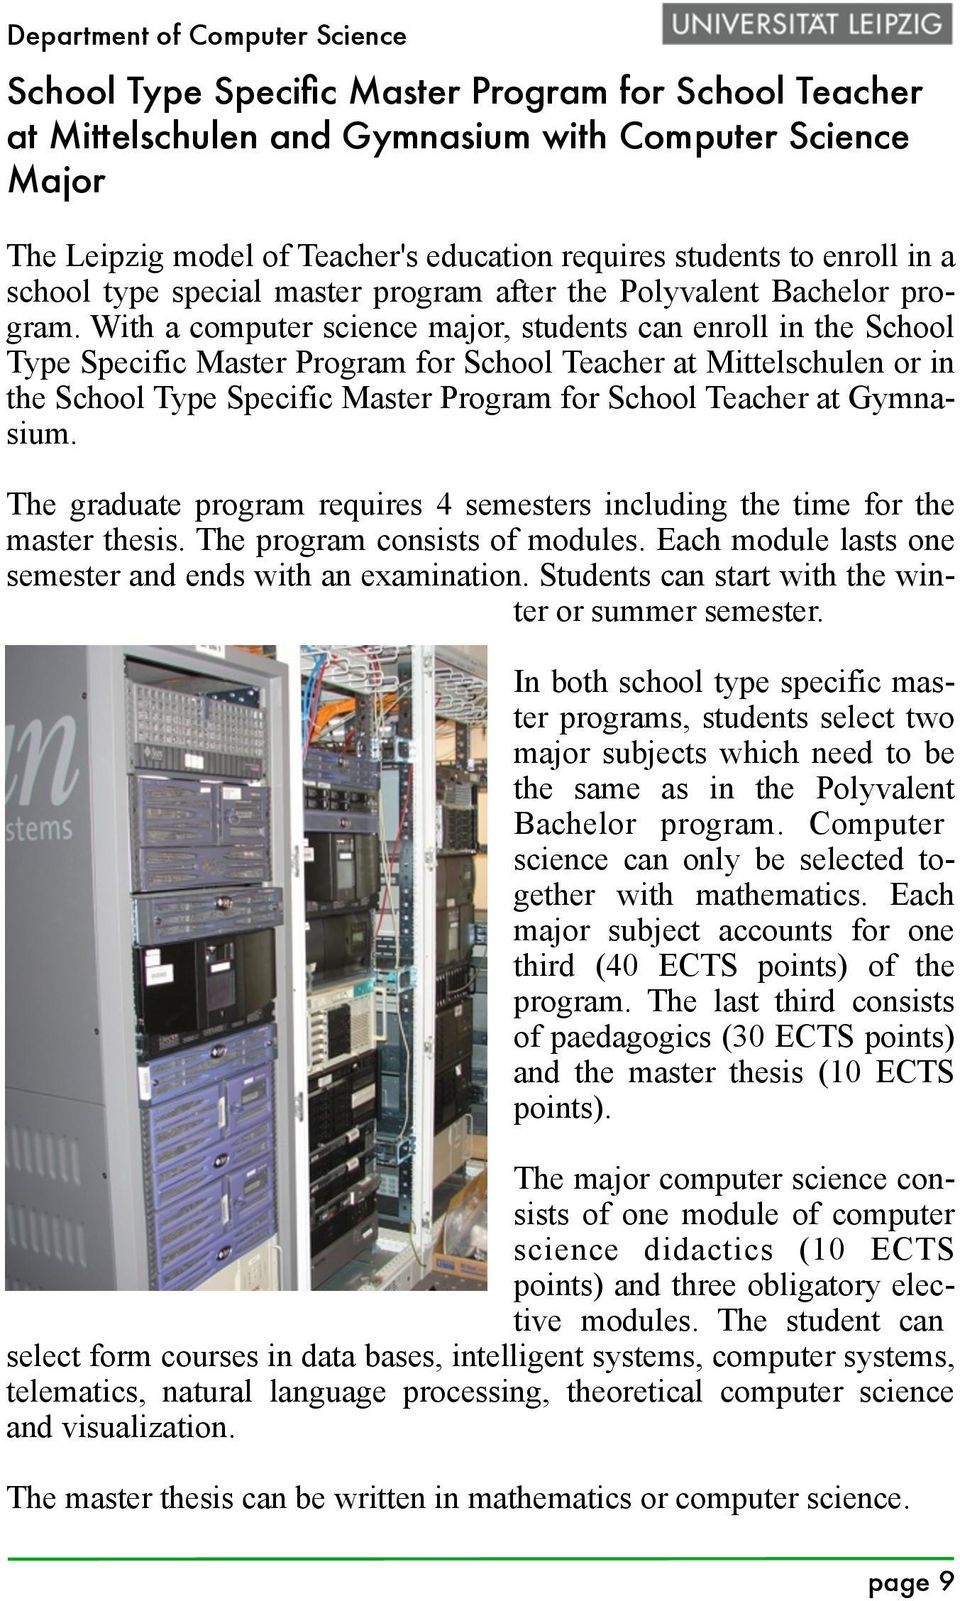 With a computer science major, students can enroll in the School Type Specific Master Program for School Teacher at Mittelschulen or in the School Type Specific Master Program for School Teacher at